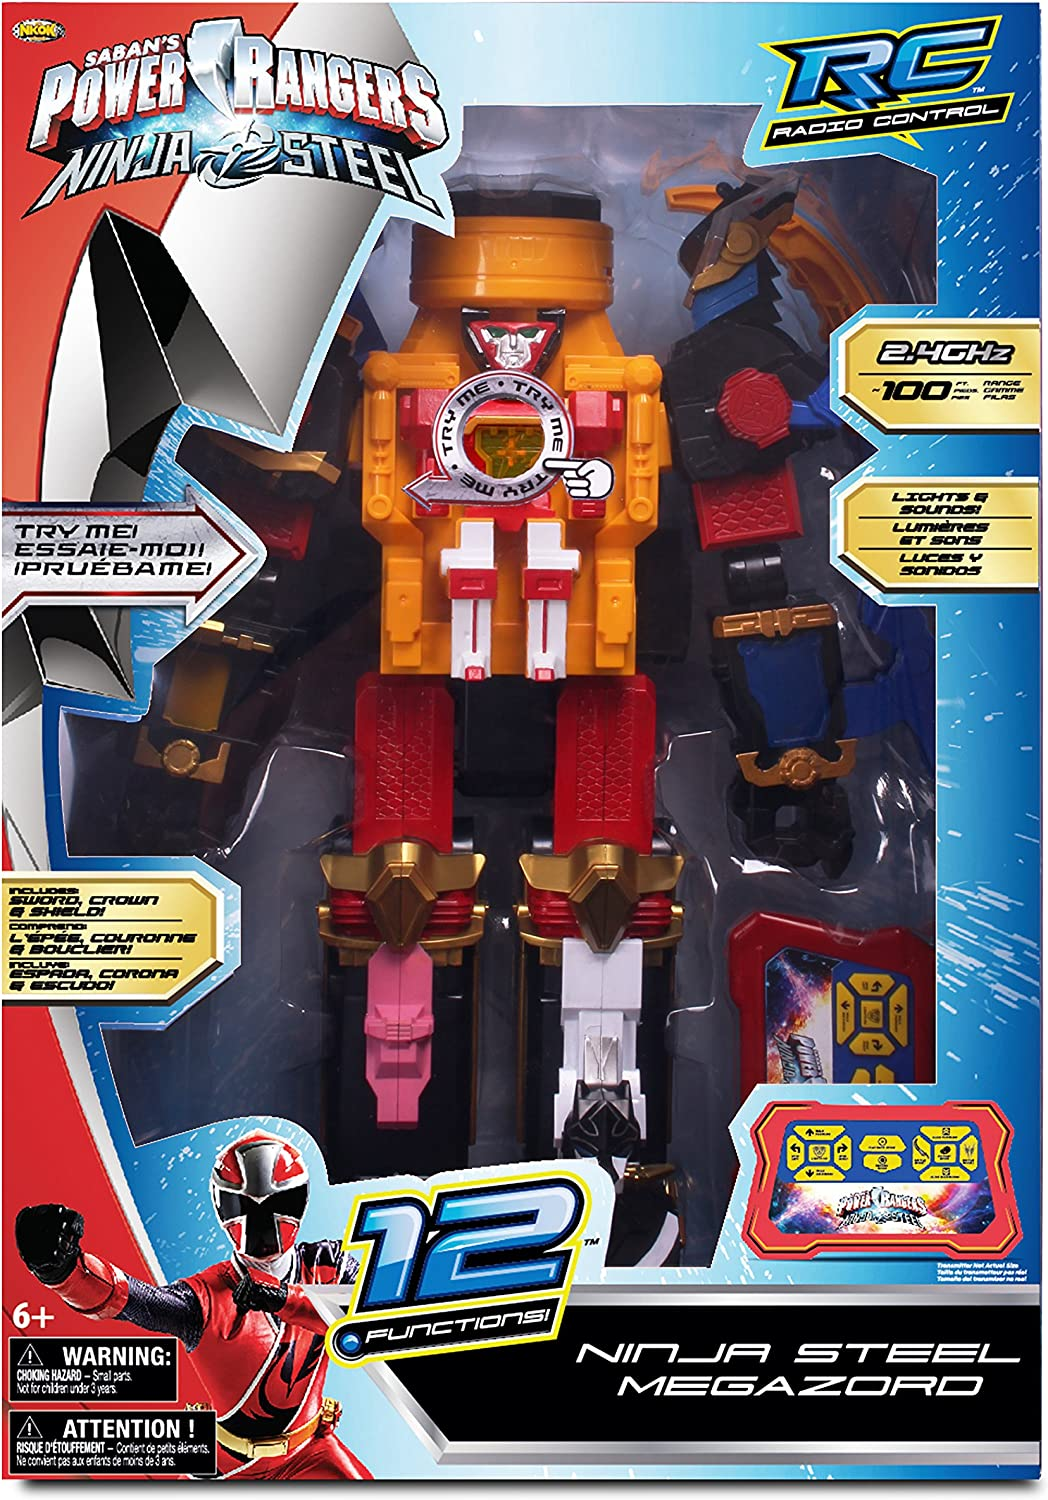 Amazon.com: NKOK RC Power Rangers Megazords: Toys & Games